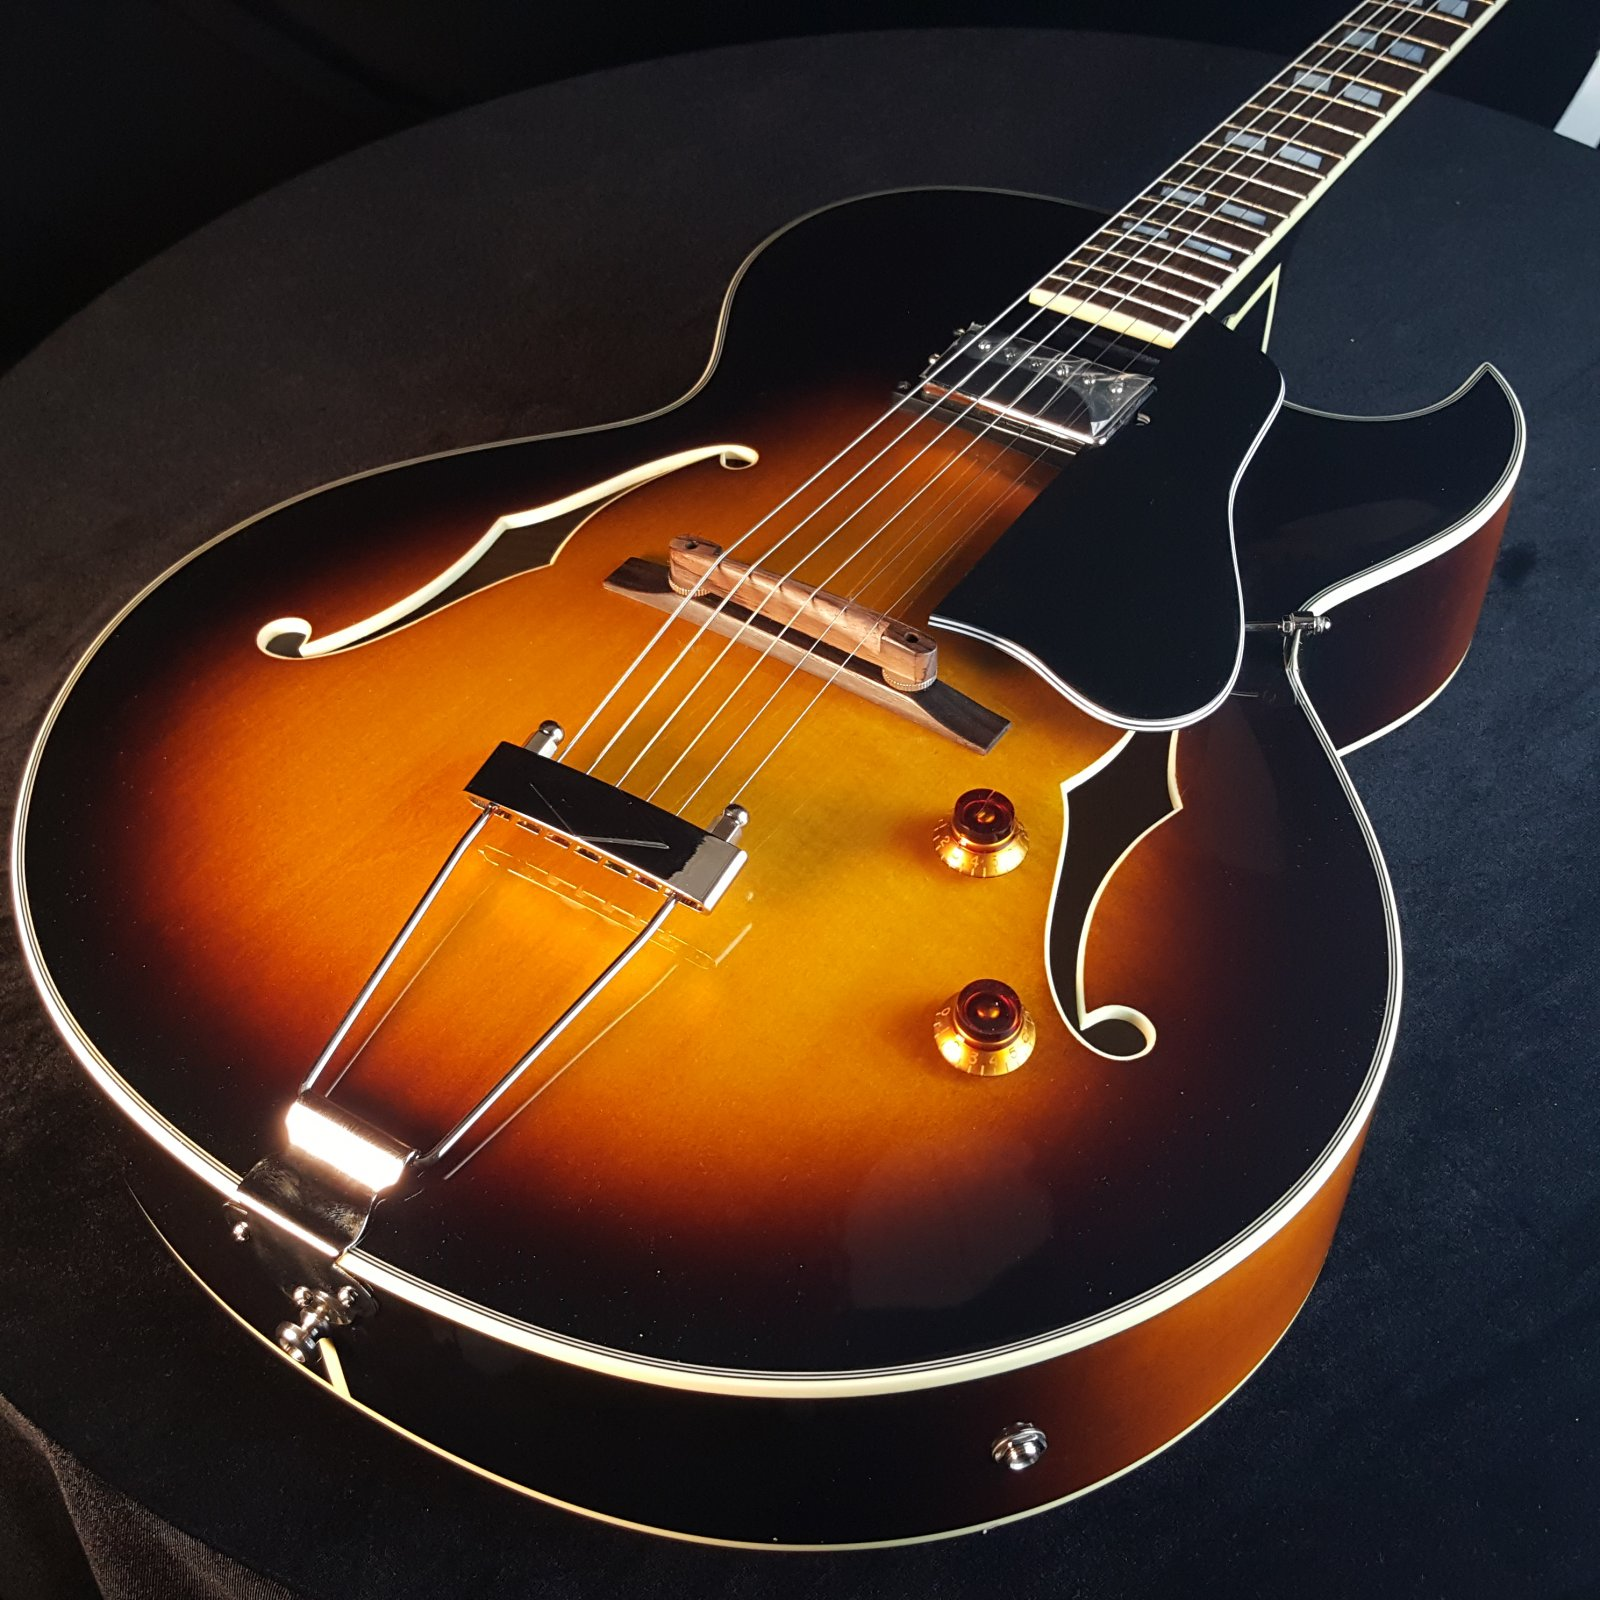 USED Eastman AR371 CE Sunburst Archtop Guitar with Case 5016